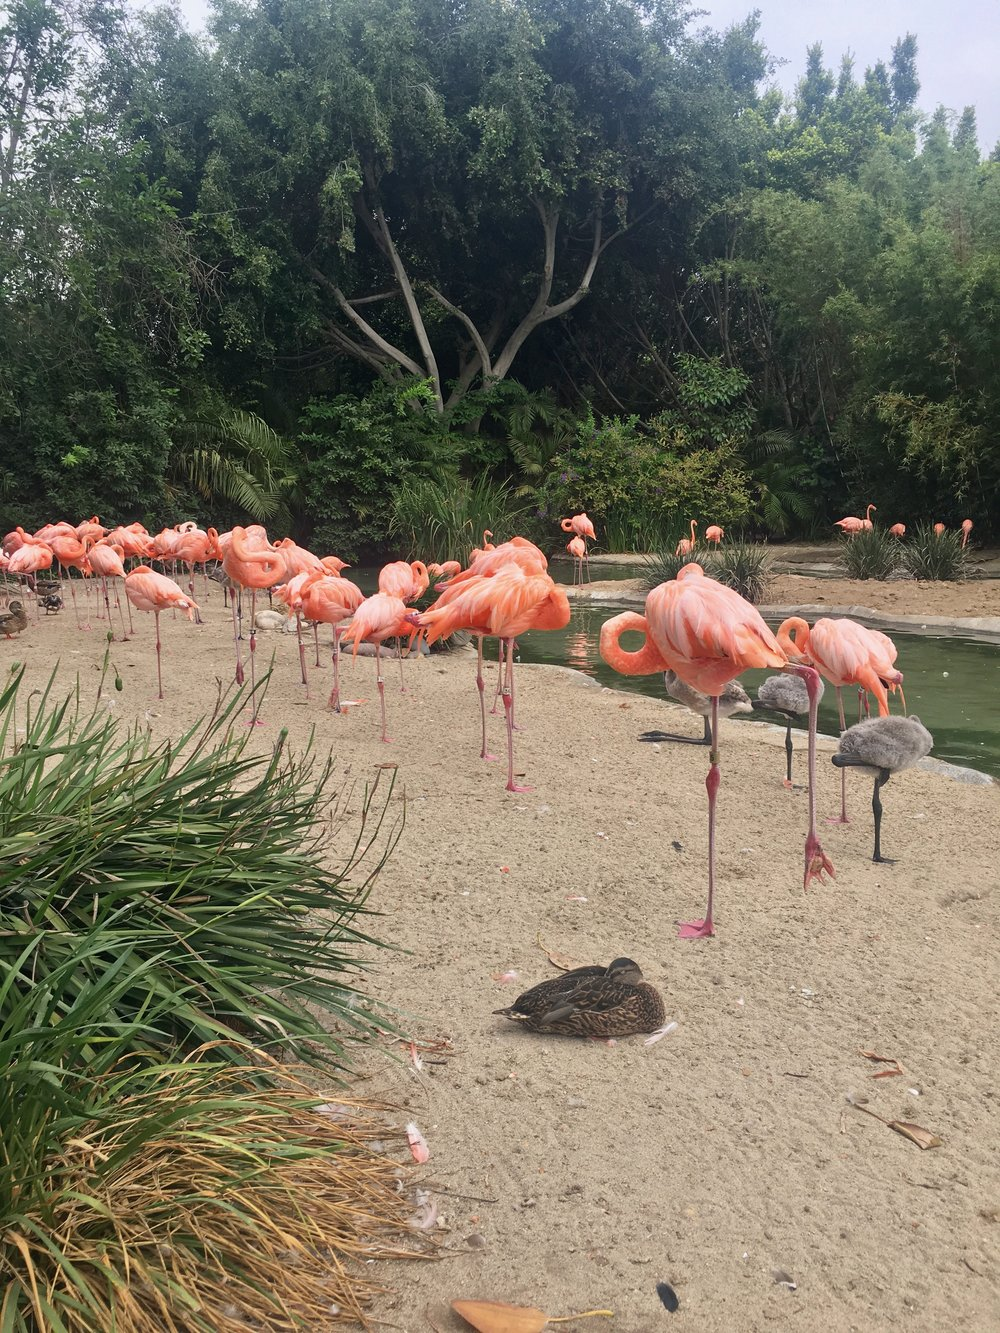 San Diego Zoo: Flamingos!